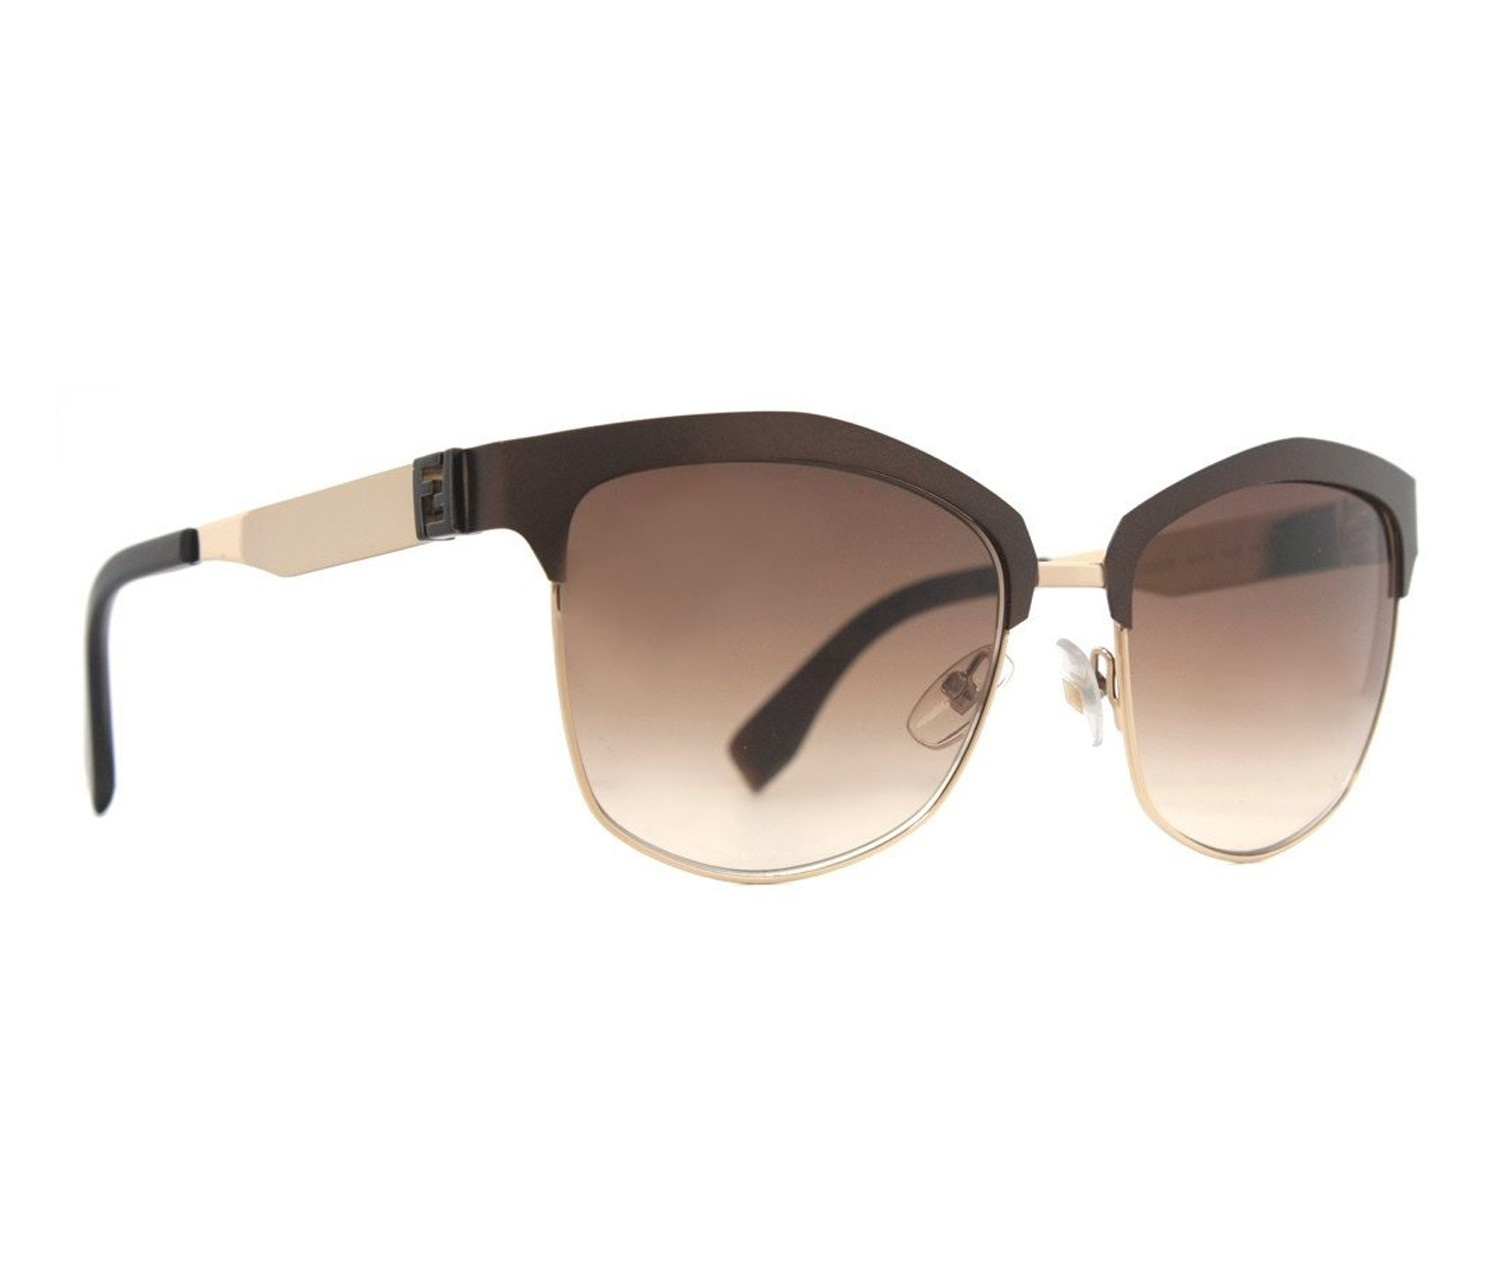 4e621a4886 More Details. The stylish Fendi FF 0051   S the Fendi sunglasses are made  with ...